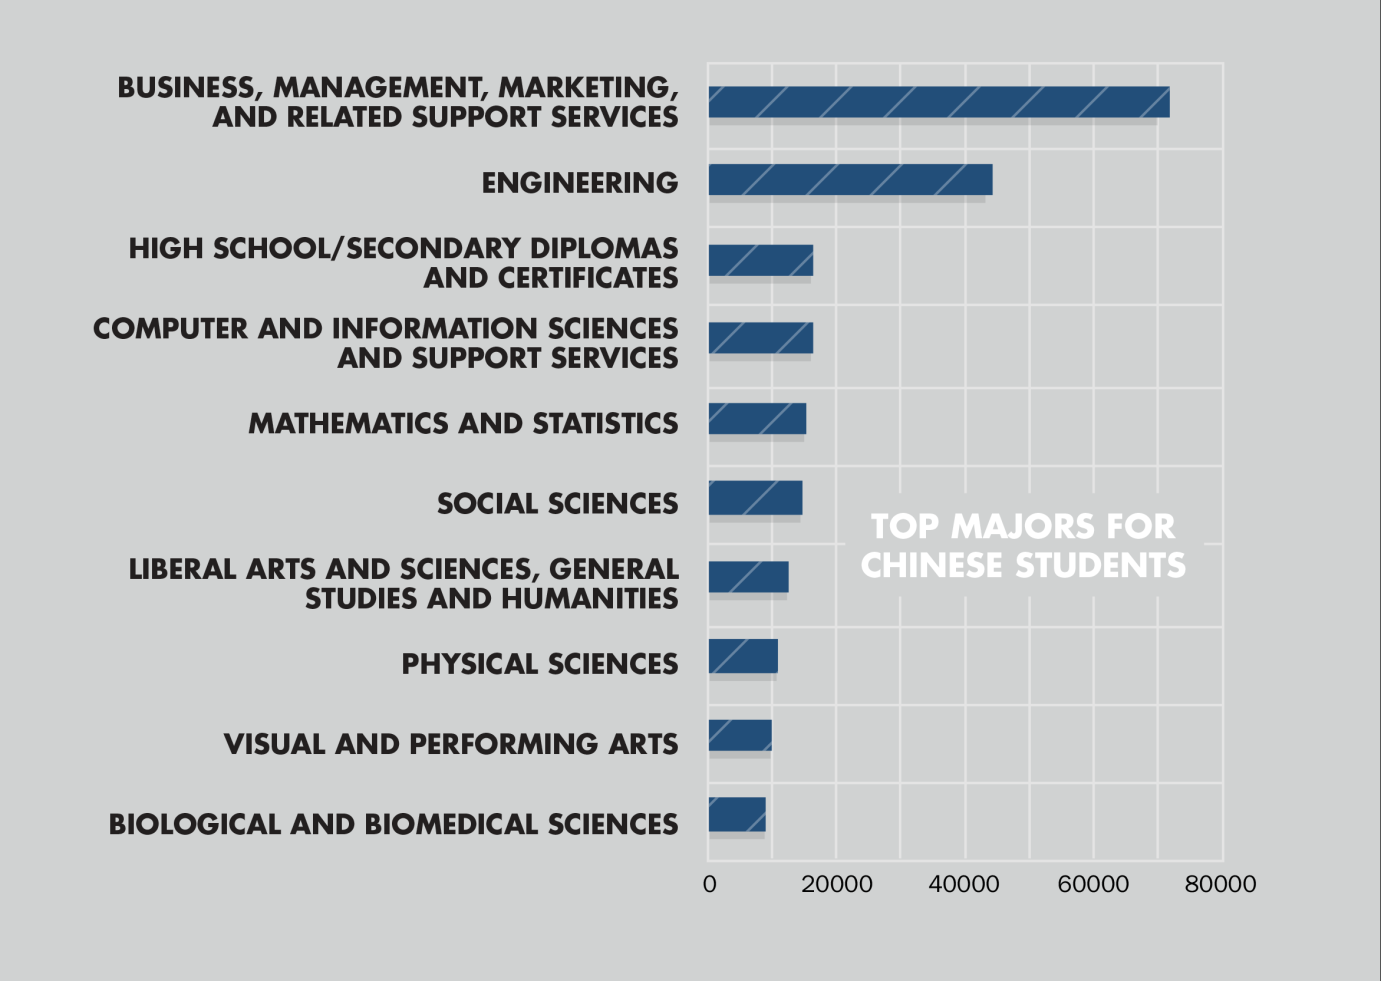 TOP MAJORS CHINA What are the most popular majors among F & M students studying in the United States from China?